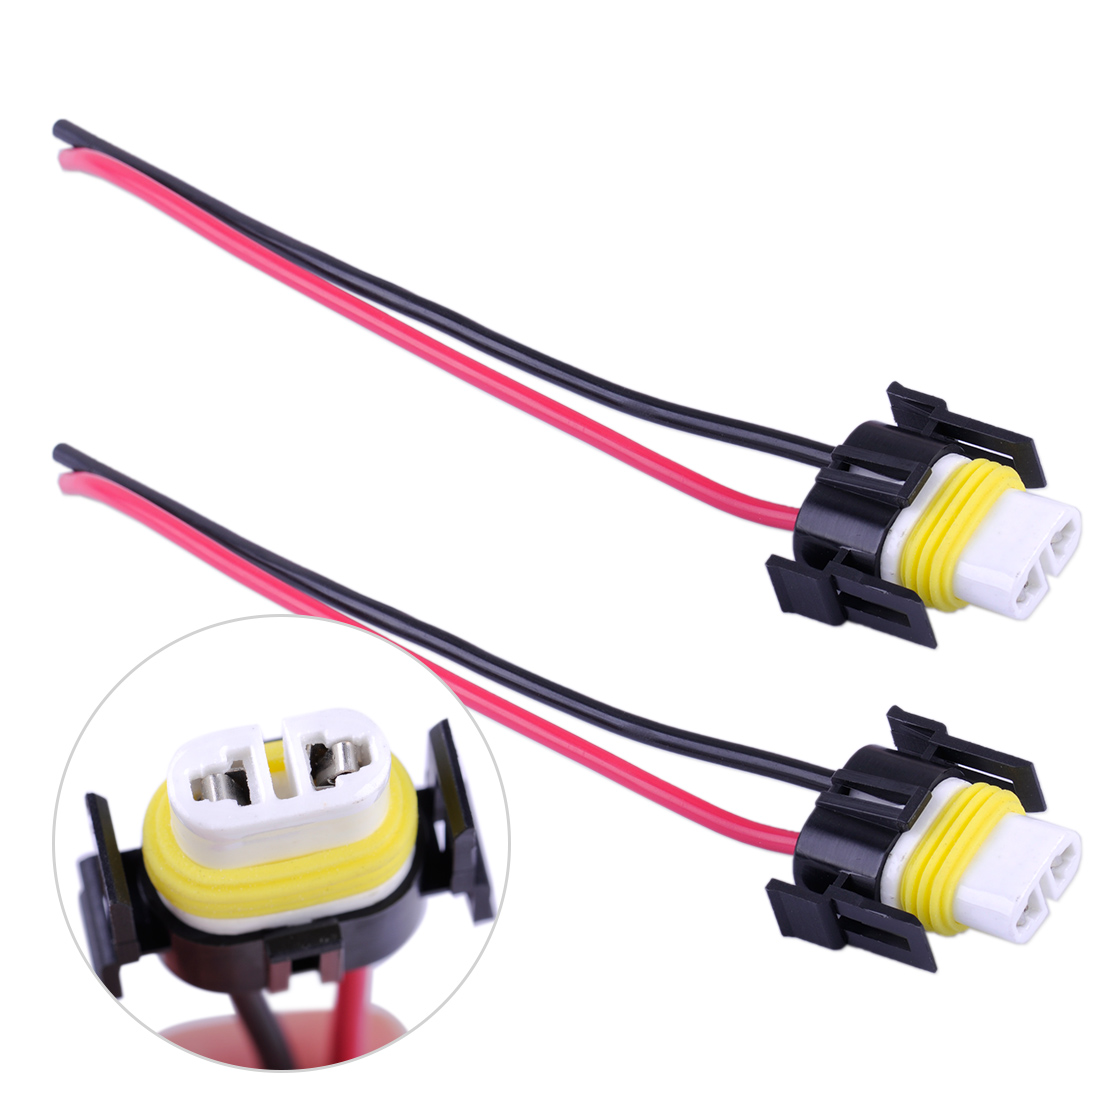 beler 2pcs H11 H8 880 881 Wiring Harness Socket Female Adapter Wire Connector Cable Plug for HID Xenon Headlight Fog Lights Lamp|plug connector|plug adapter connector|plug cable - title=